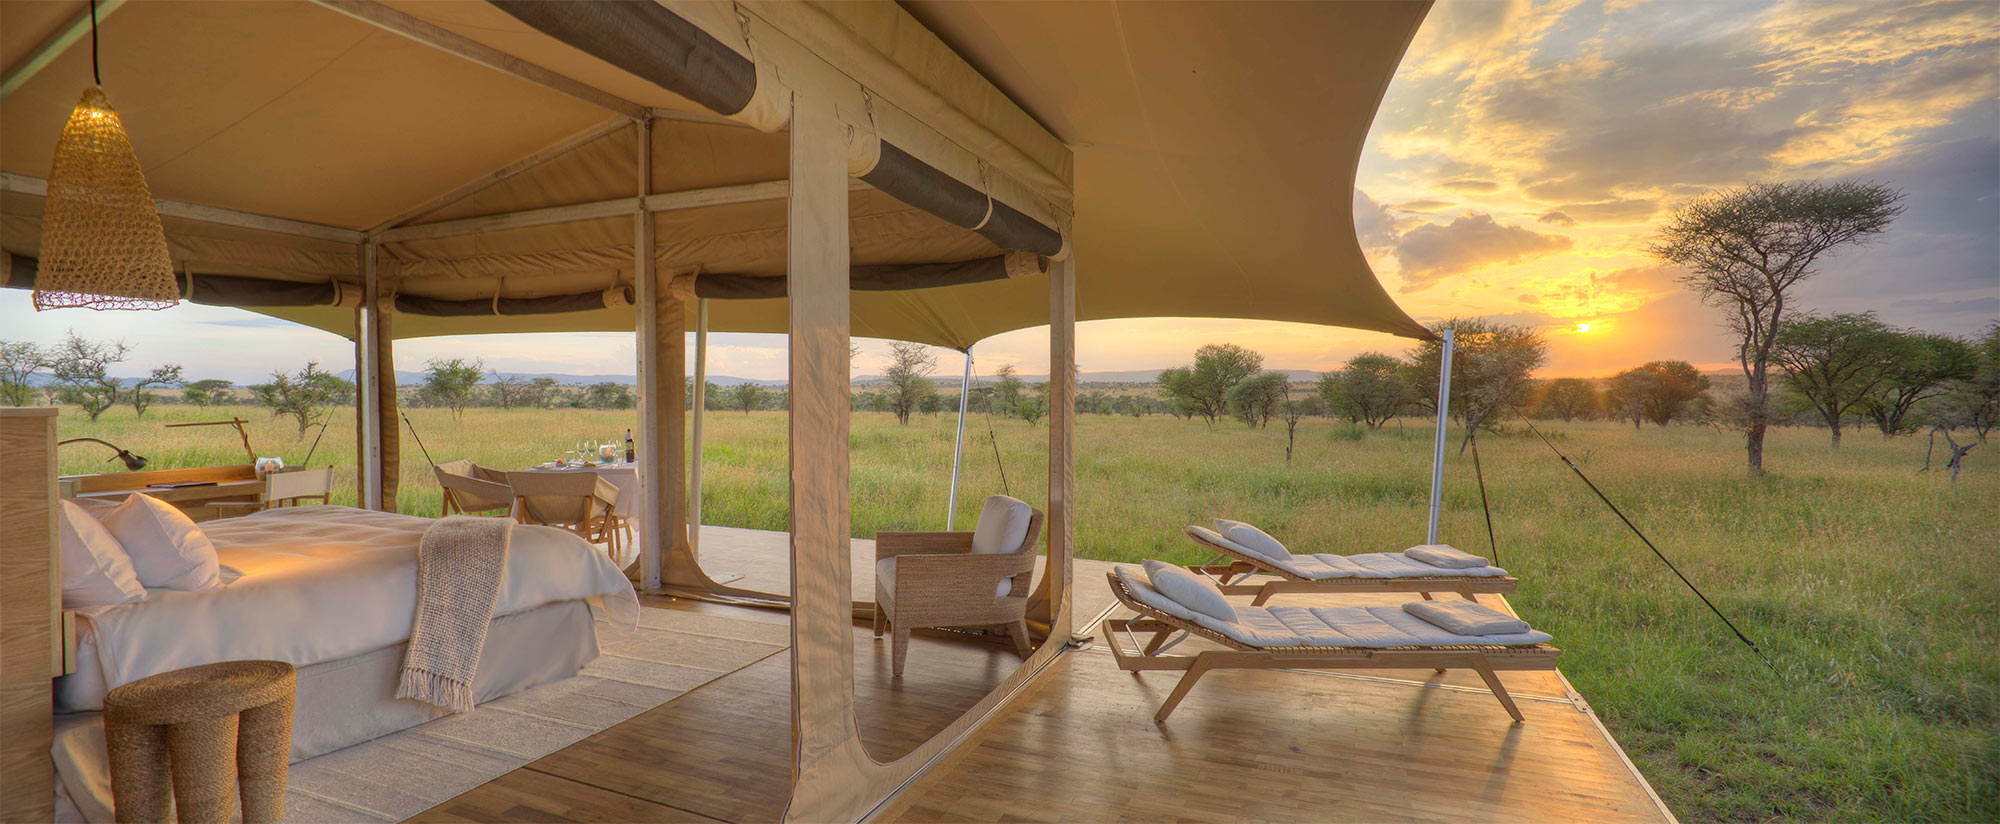 Two lounge chairs on the deck with the Serengeti in the background